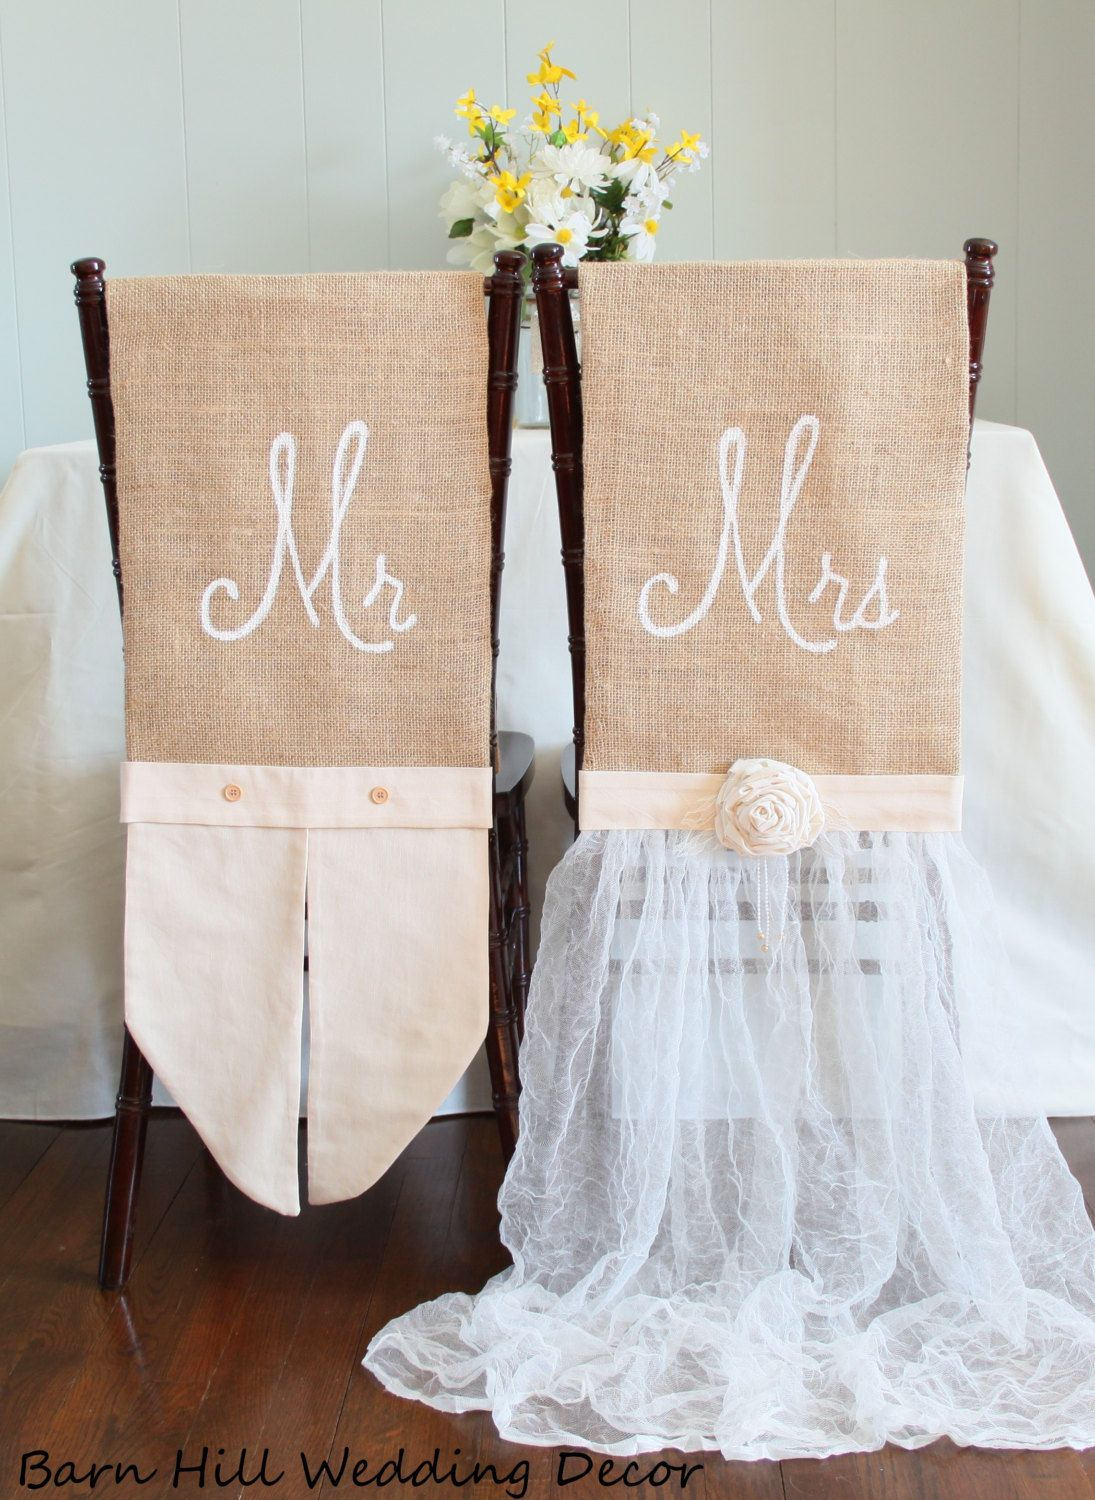 Chair cover wedding - Wedding Chair Covers Rustic Country Formal Wedding Chair Covers Chiavari Chair Cover Mr Mrs Chair